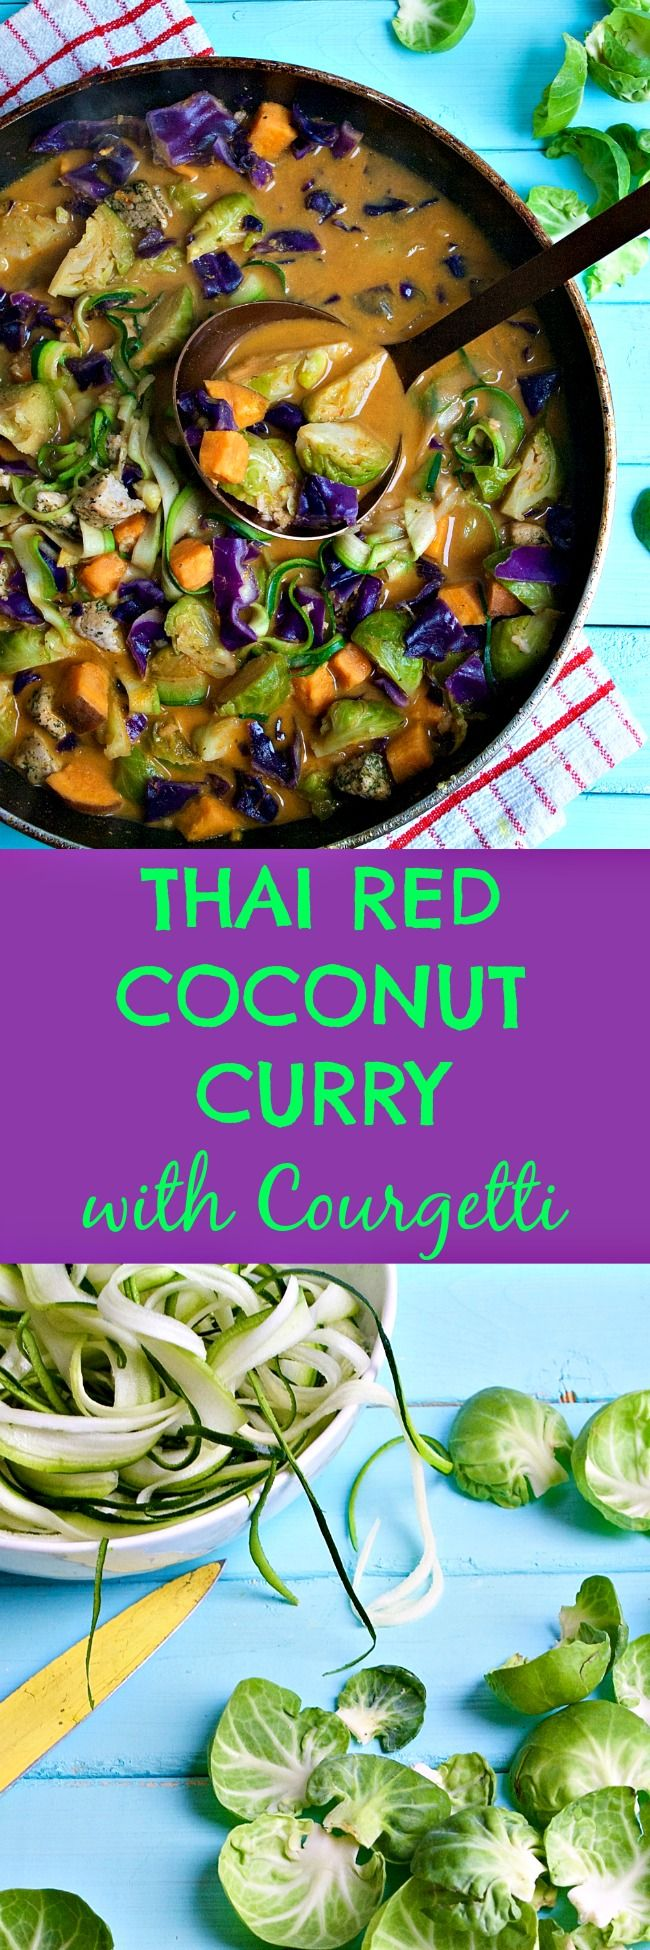 Thai Red Coconut Curry with Courgetti & Rainbow Veg. This Thai inspired red coconut curry is absolutely bursting with flavour and colour. You've gotta try this!